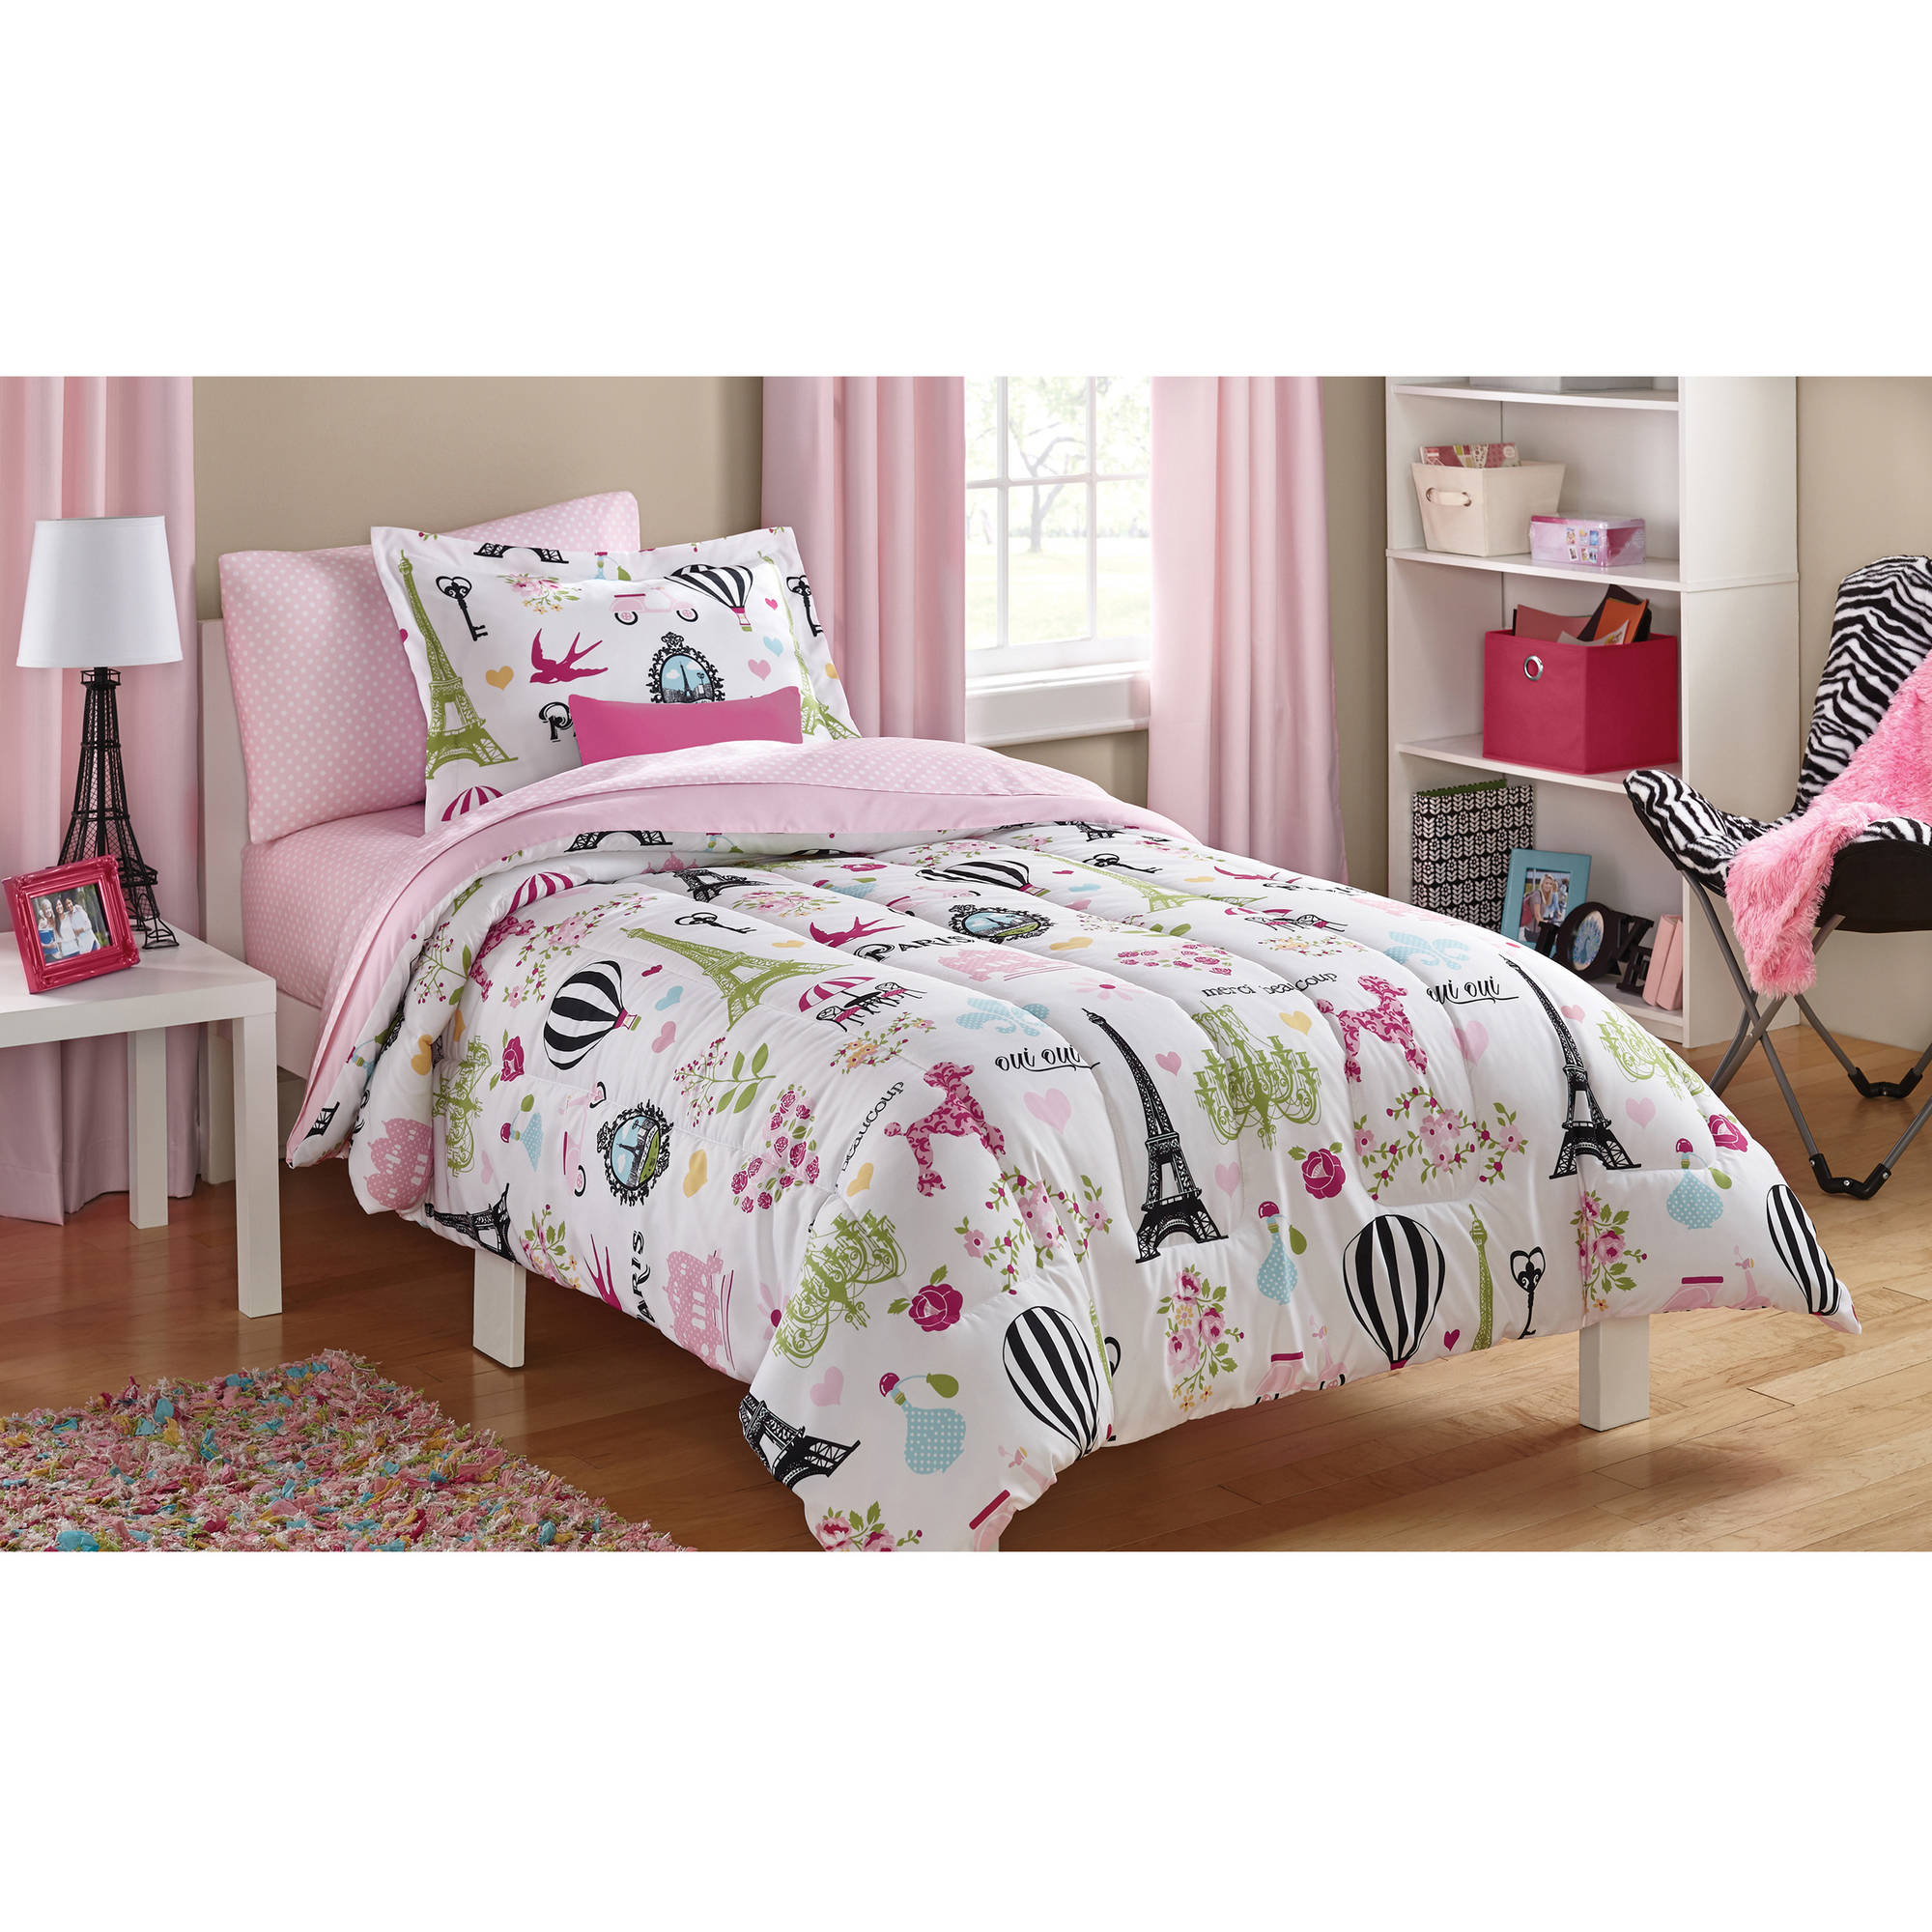 DETAILS Paris Bed In A Bag Bedding Set Twin Kids